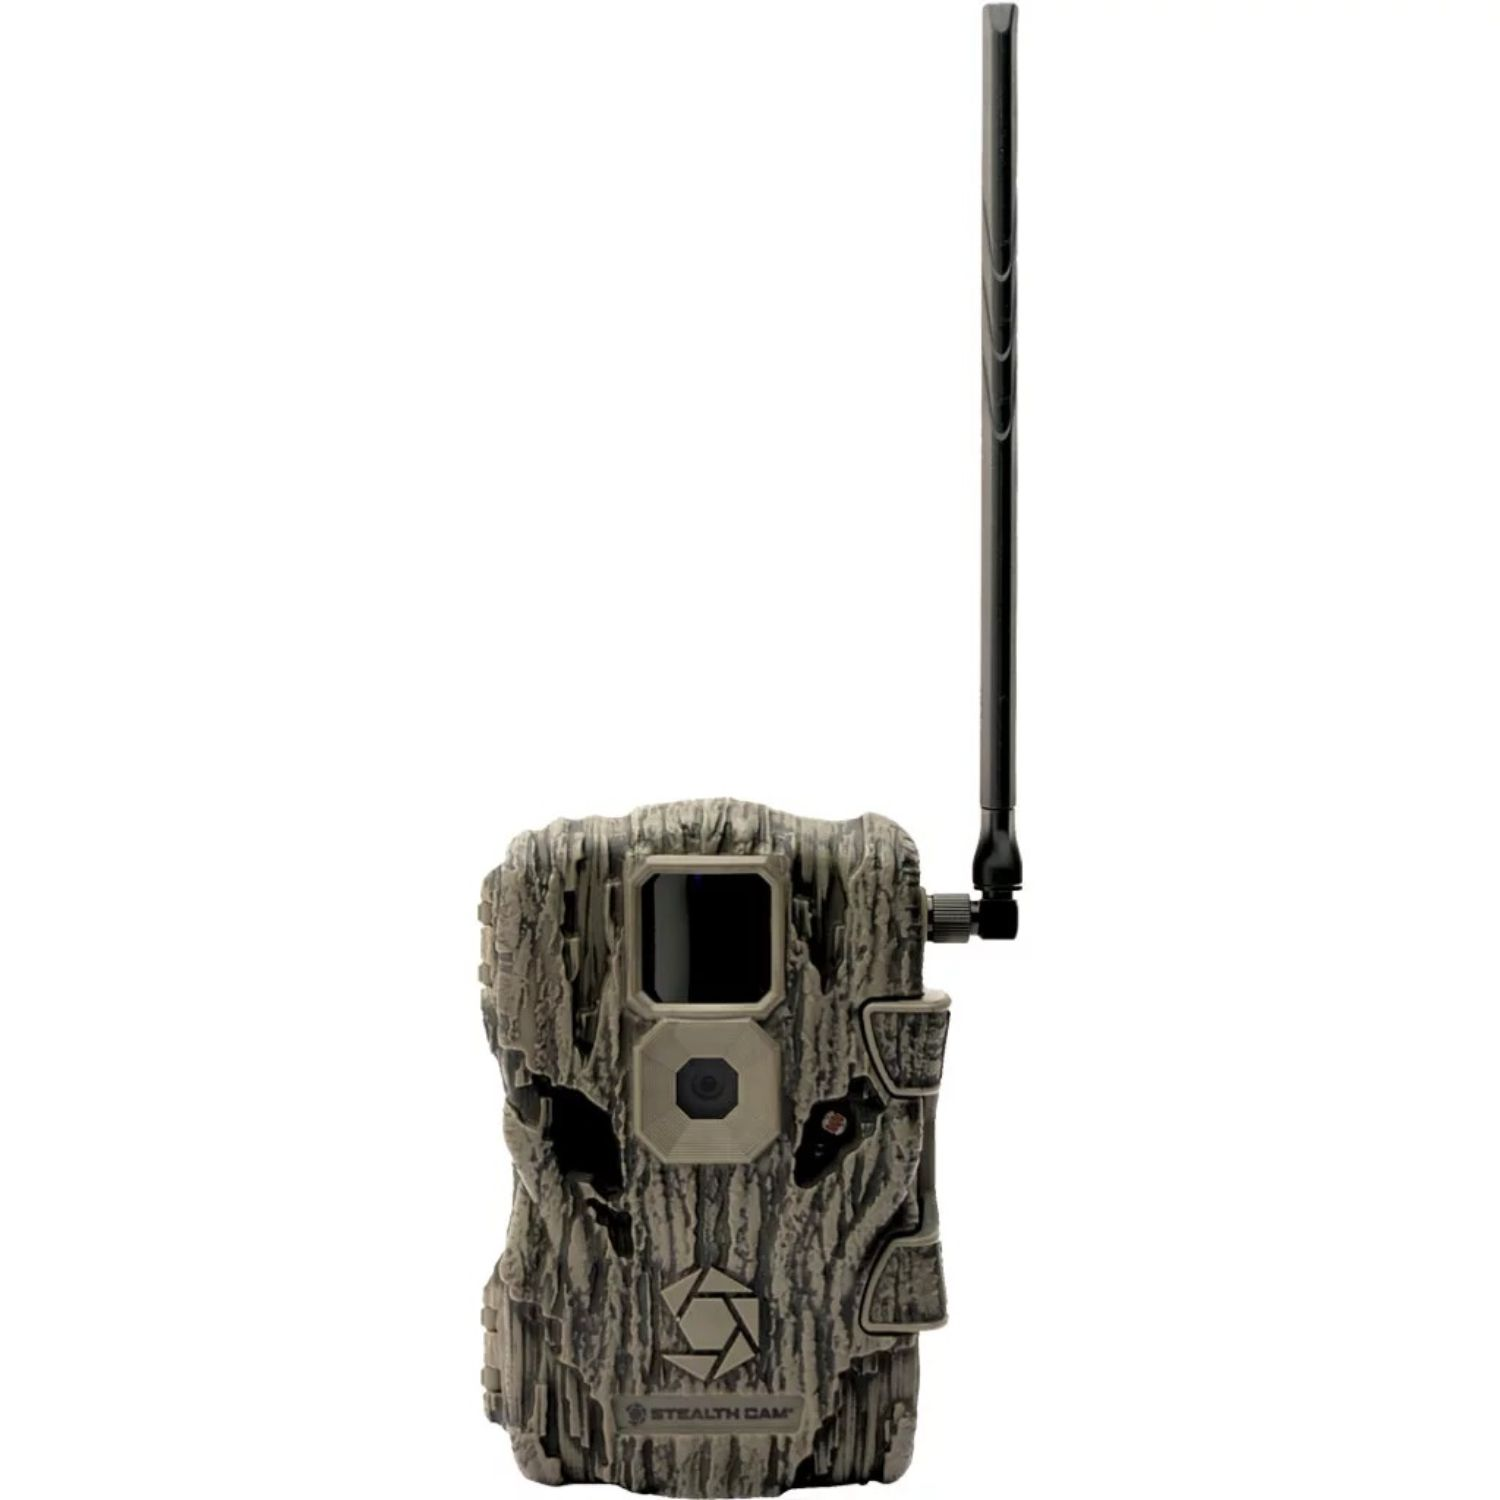 FUSION Cellular - ATT Trail Camera